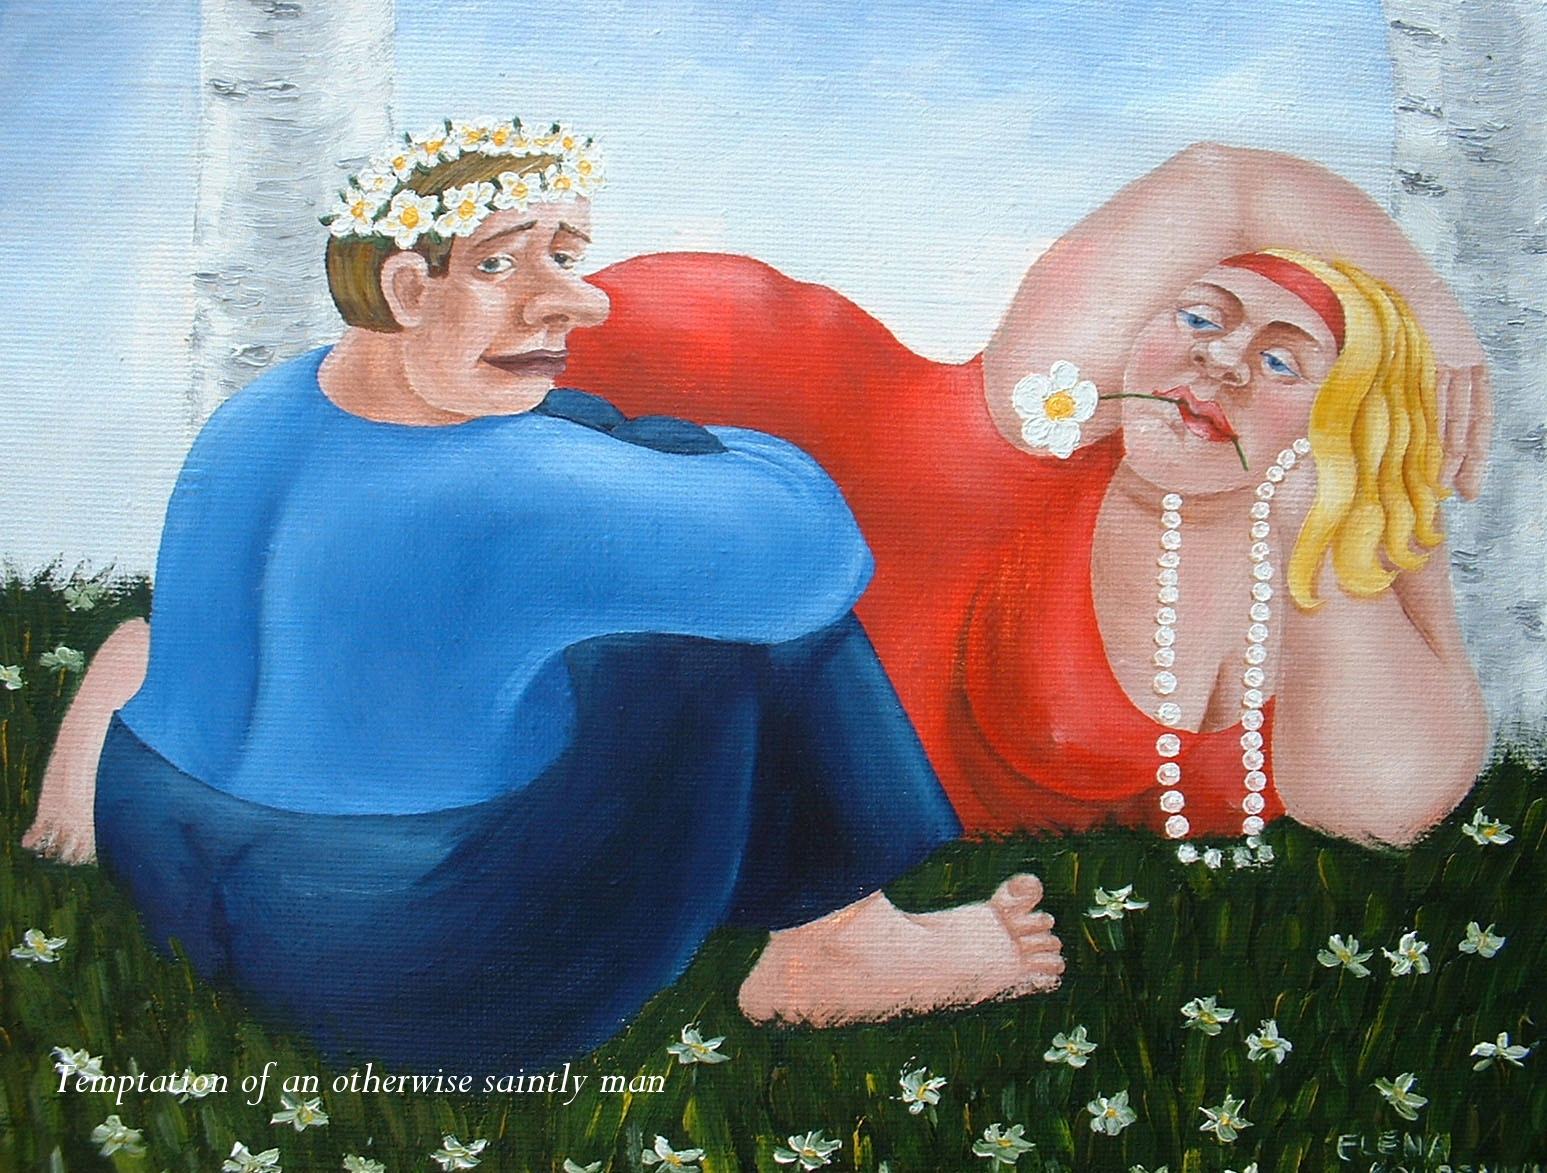 quirky figurative humorous painting